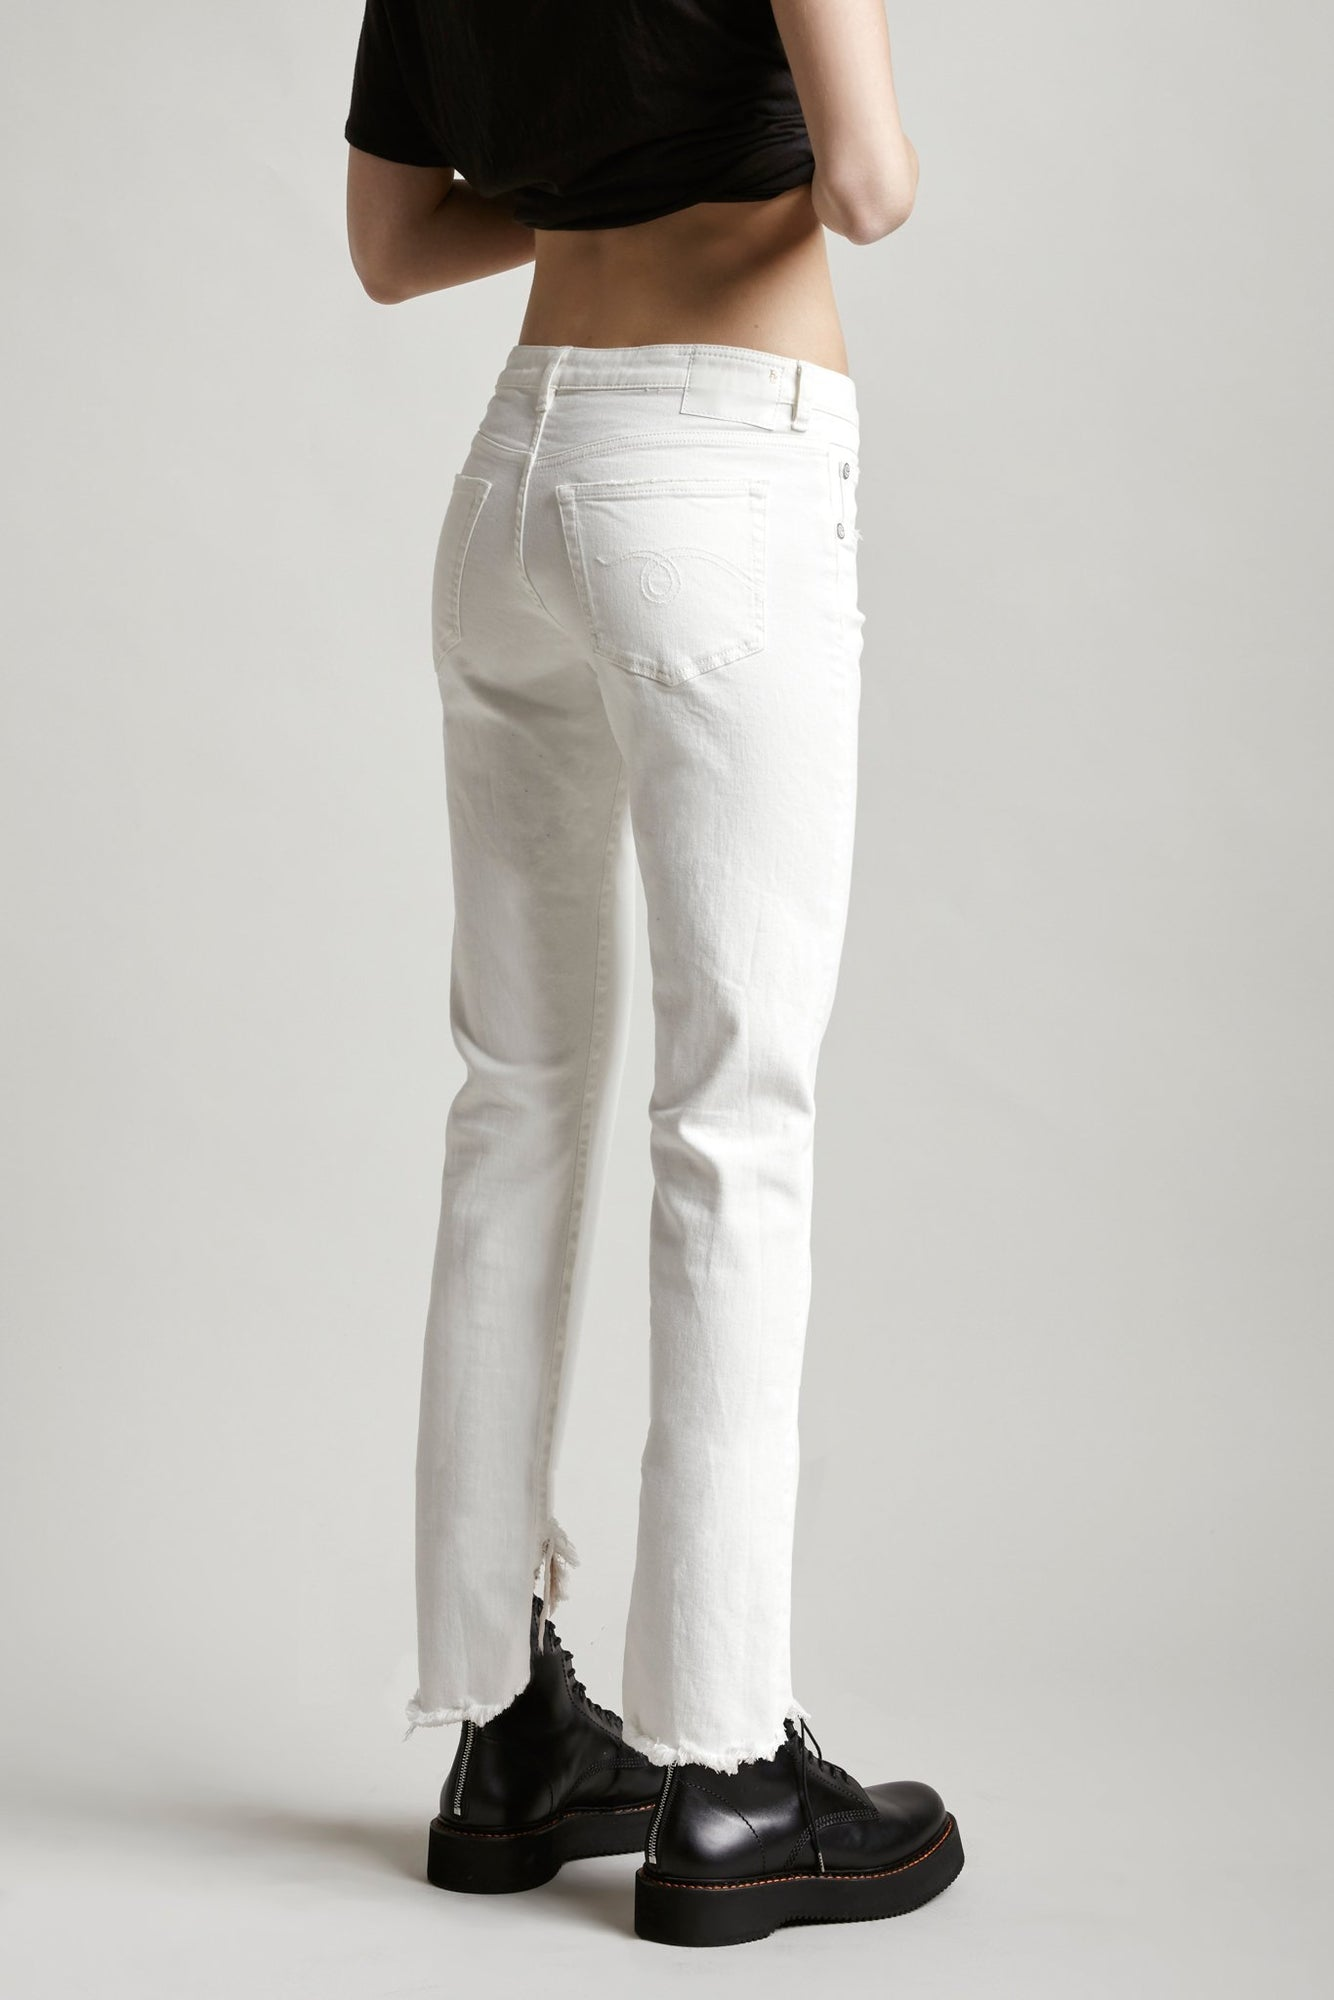 R13 Denim boy straight mid rise jean in white with distressed angled hem